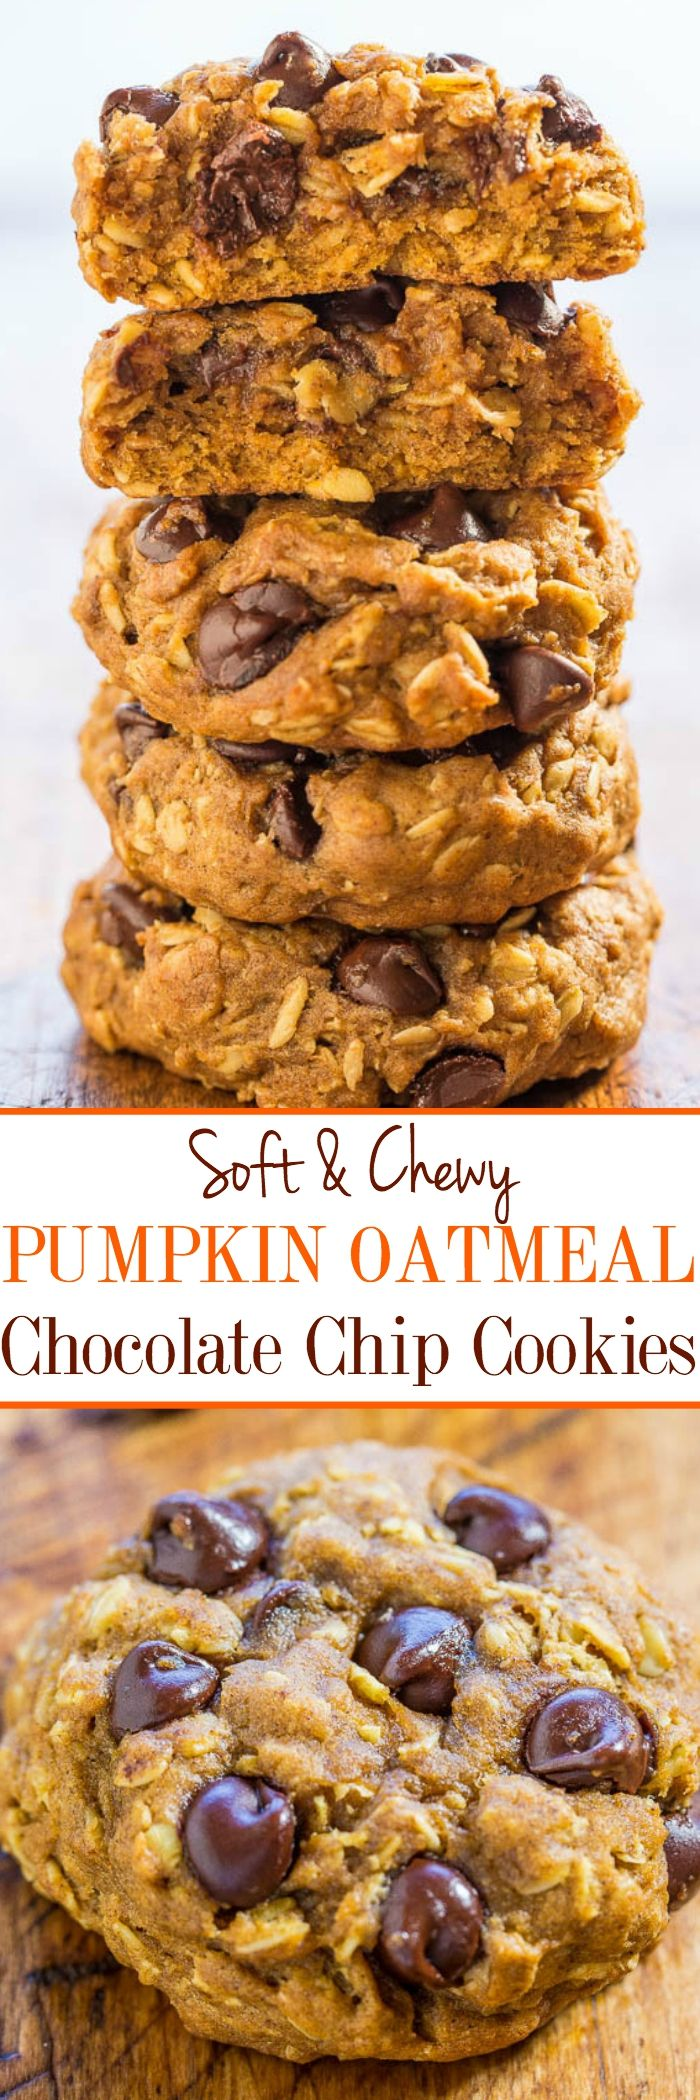 Soft and Chewy Pumpkin Oatmeal Chocolate Chip Cookies - A thick, hearty oatmeal…